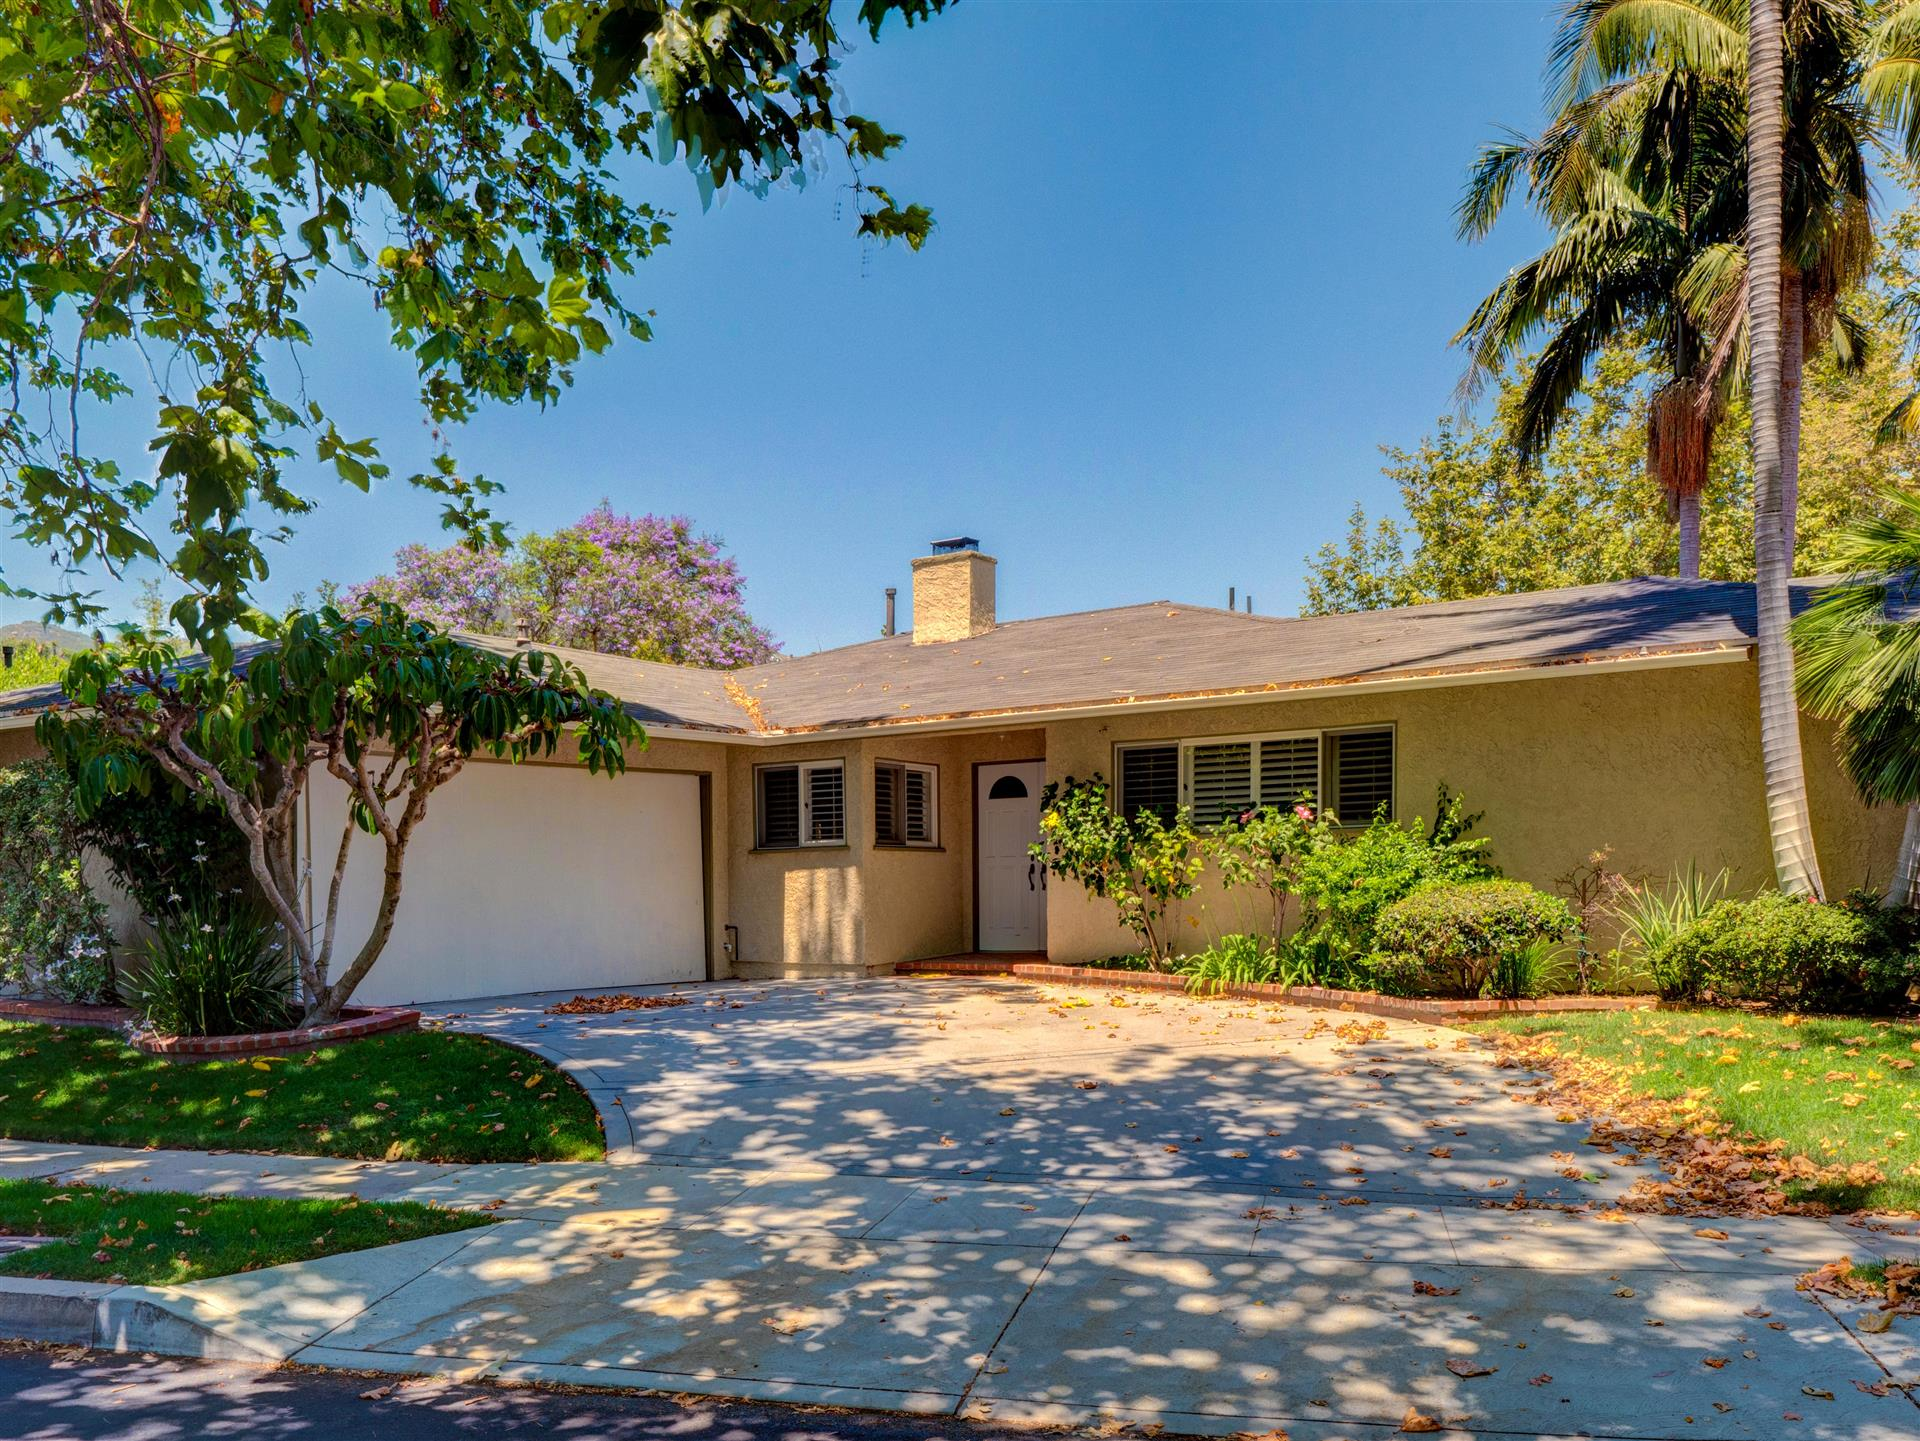 16301 Akron, Pacific Palisades, California 90272, 3 Bedrooms Bedrooms, ,2 BathroomsBathrooms,Home,For Rent,Akron,1052